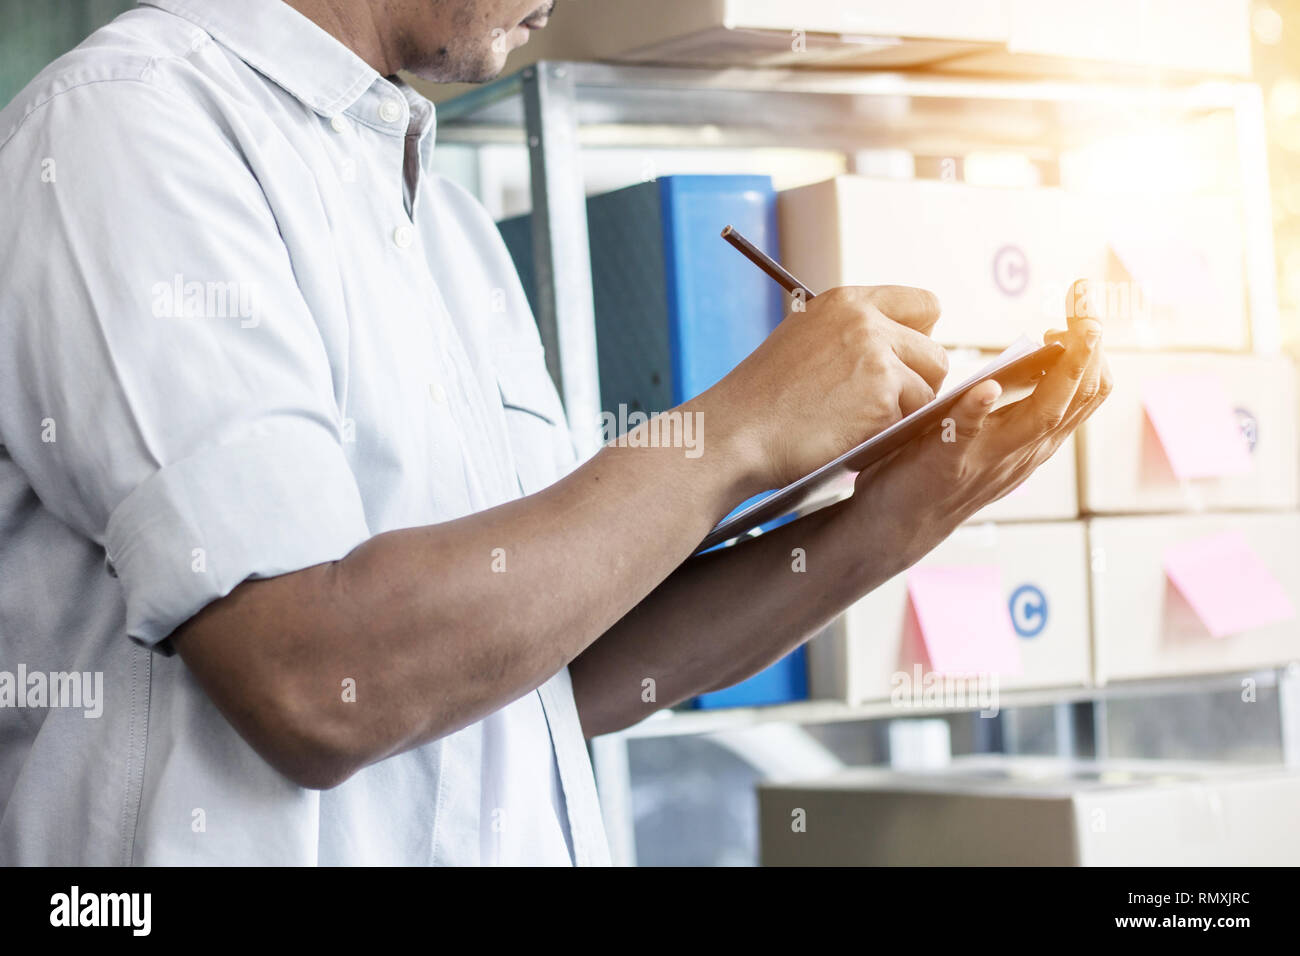 Officer checking products and stock Stock Photo